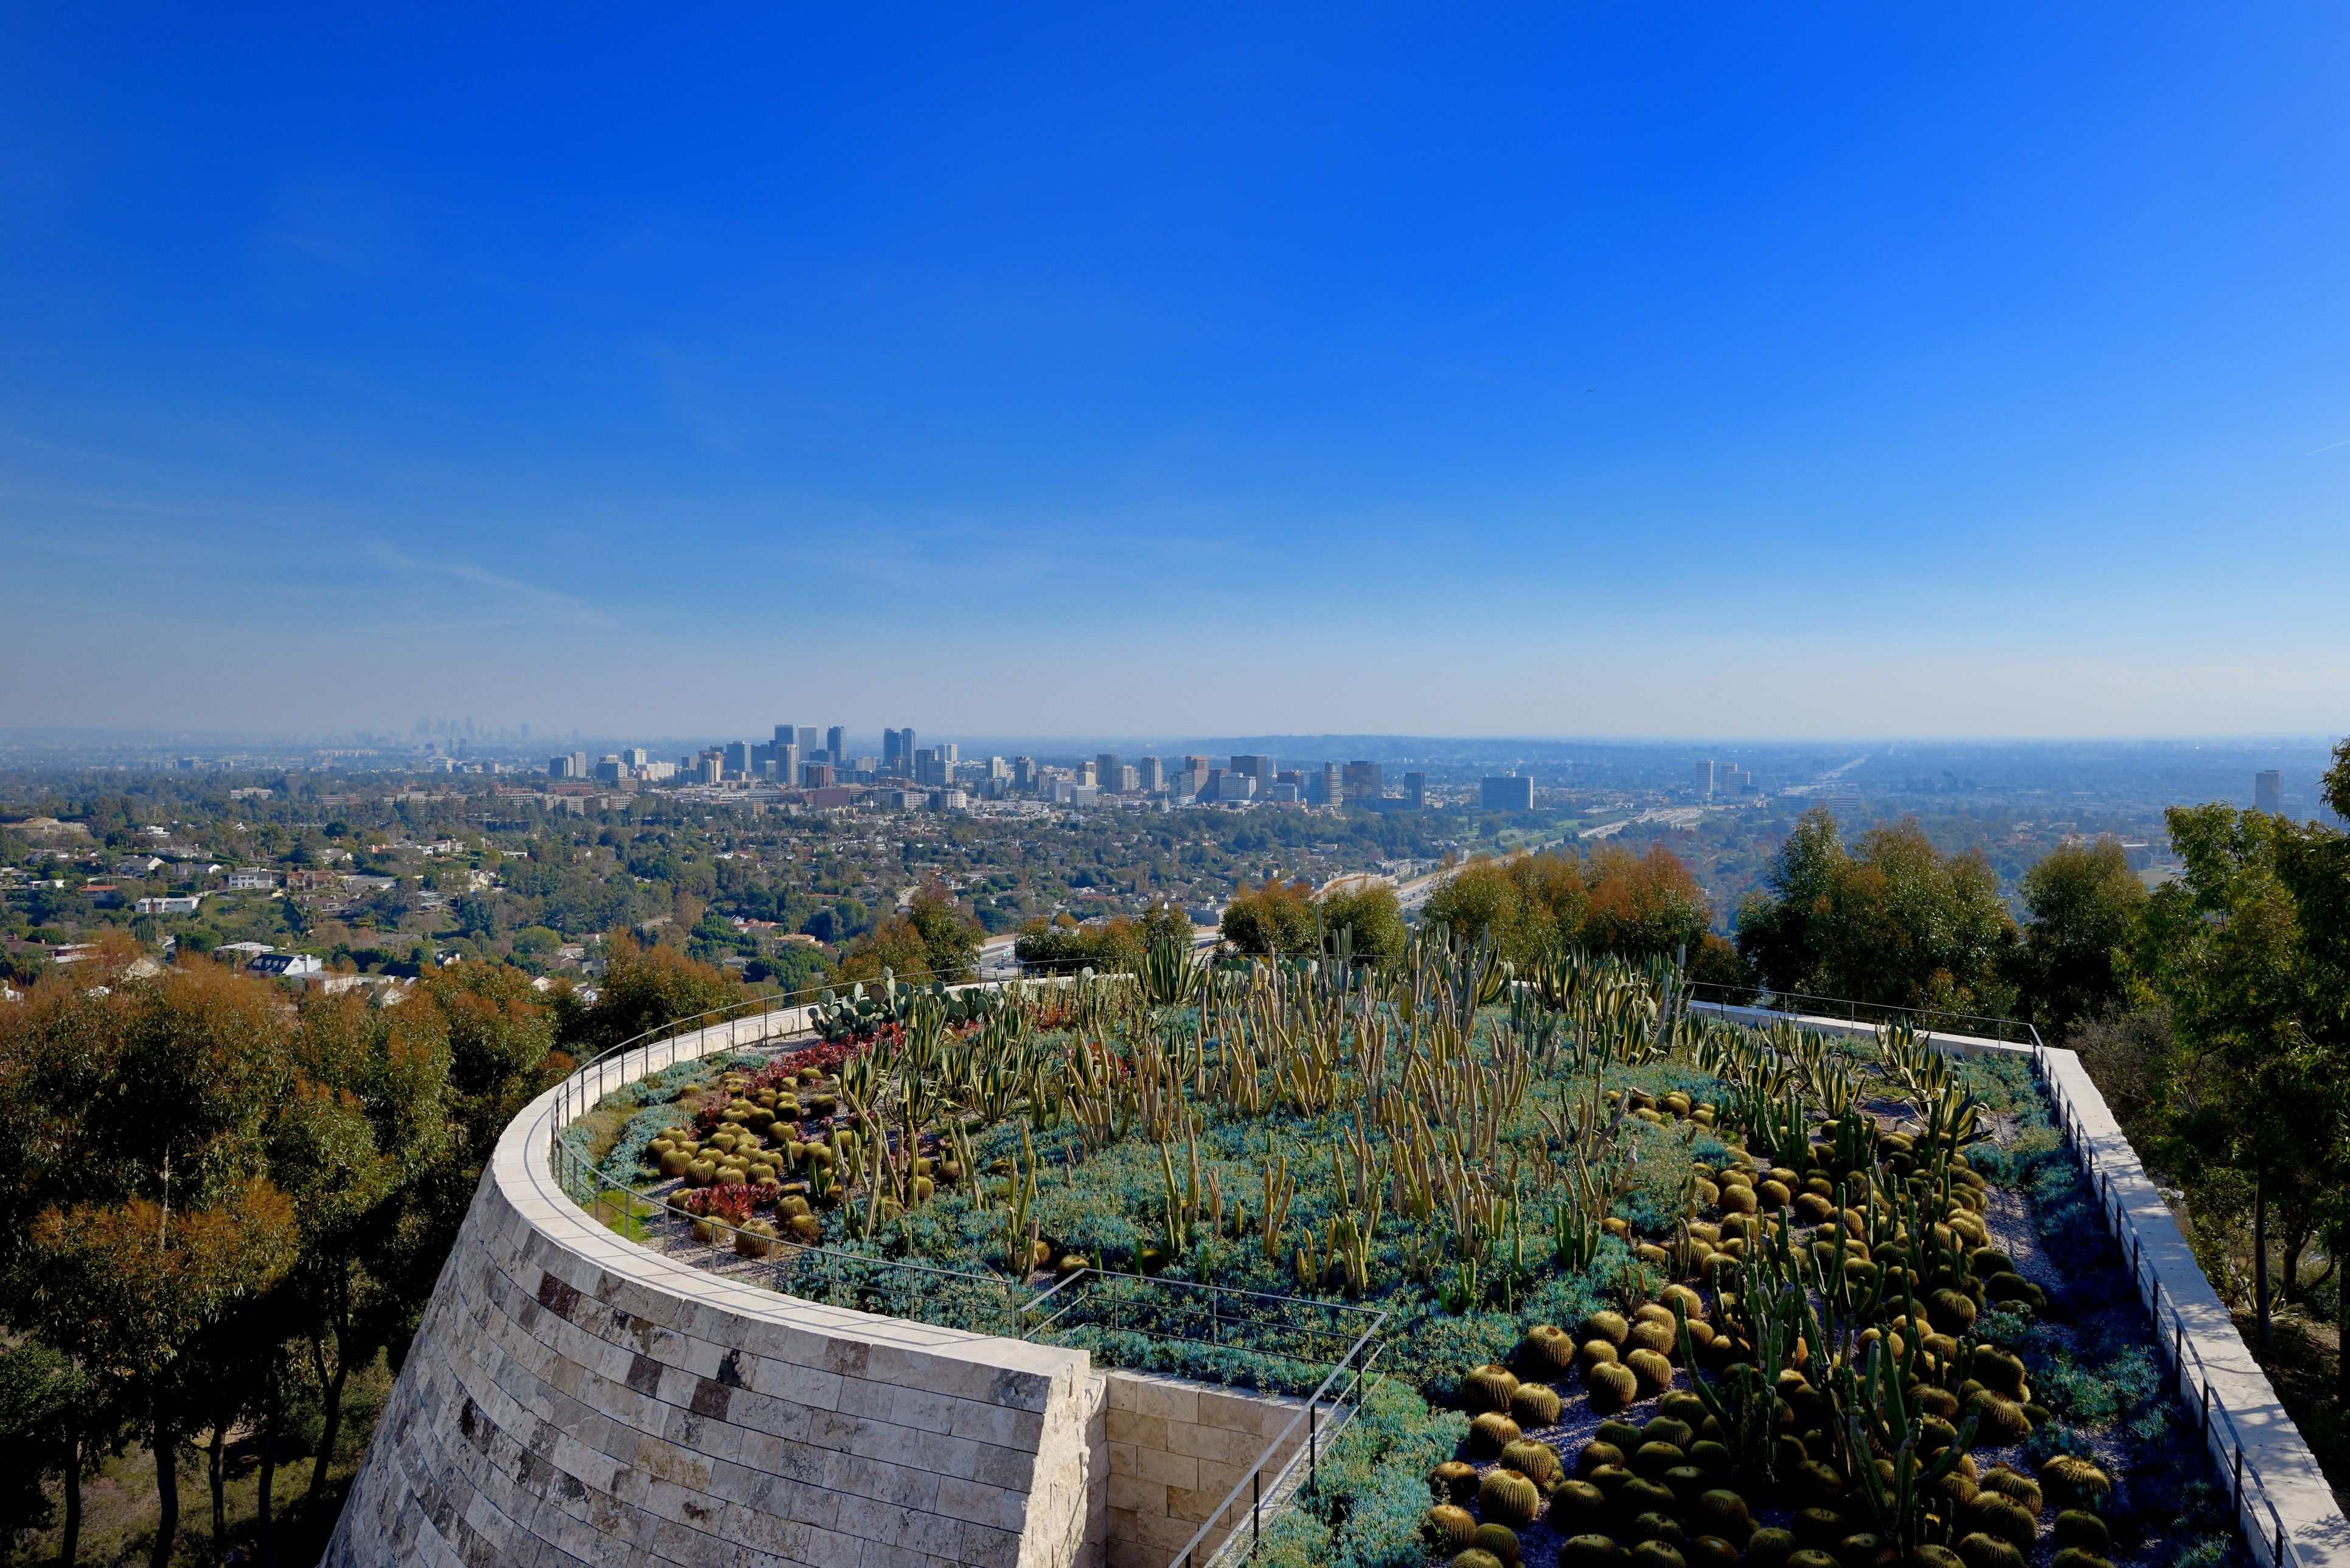 Botanical Gardens Open to the Public in Los Angeles